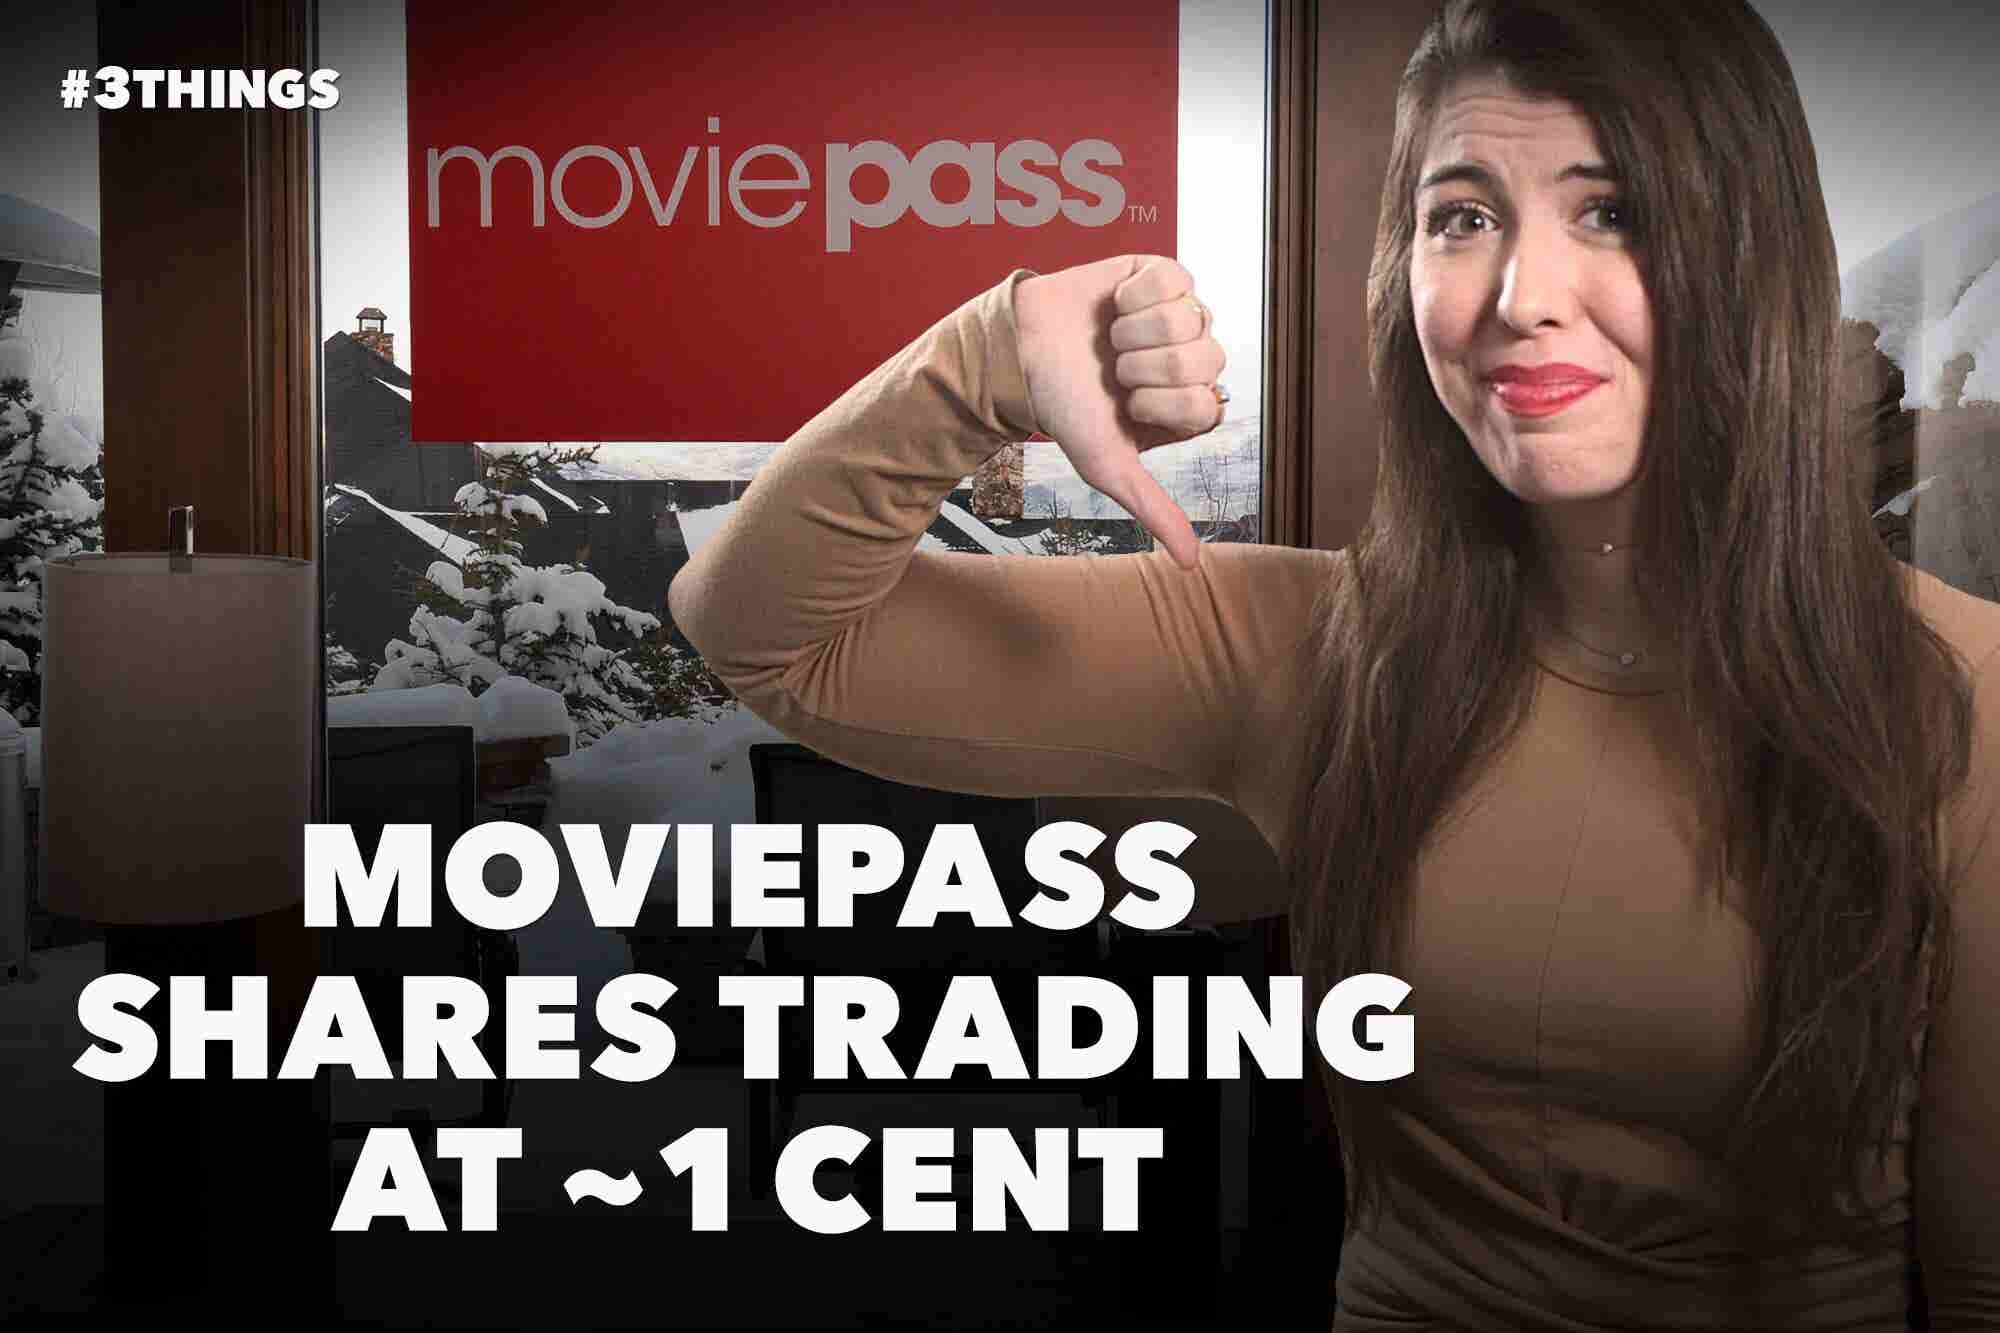 MoviePass Shares Trading at Just Over 1 Cent; Google+ Shuts Down Early and Facebook Files Controversial New Patents (60-Second Video)